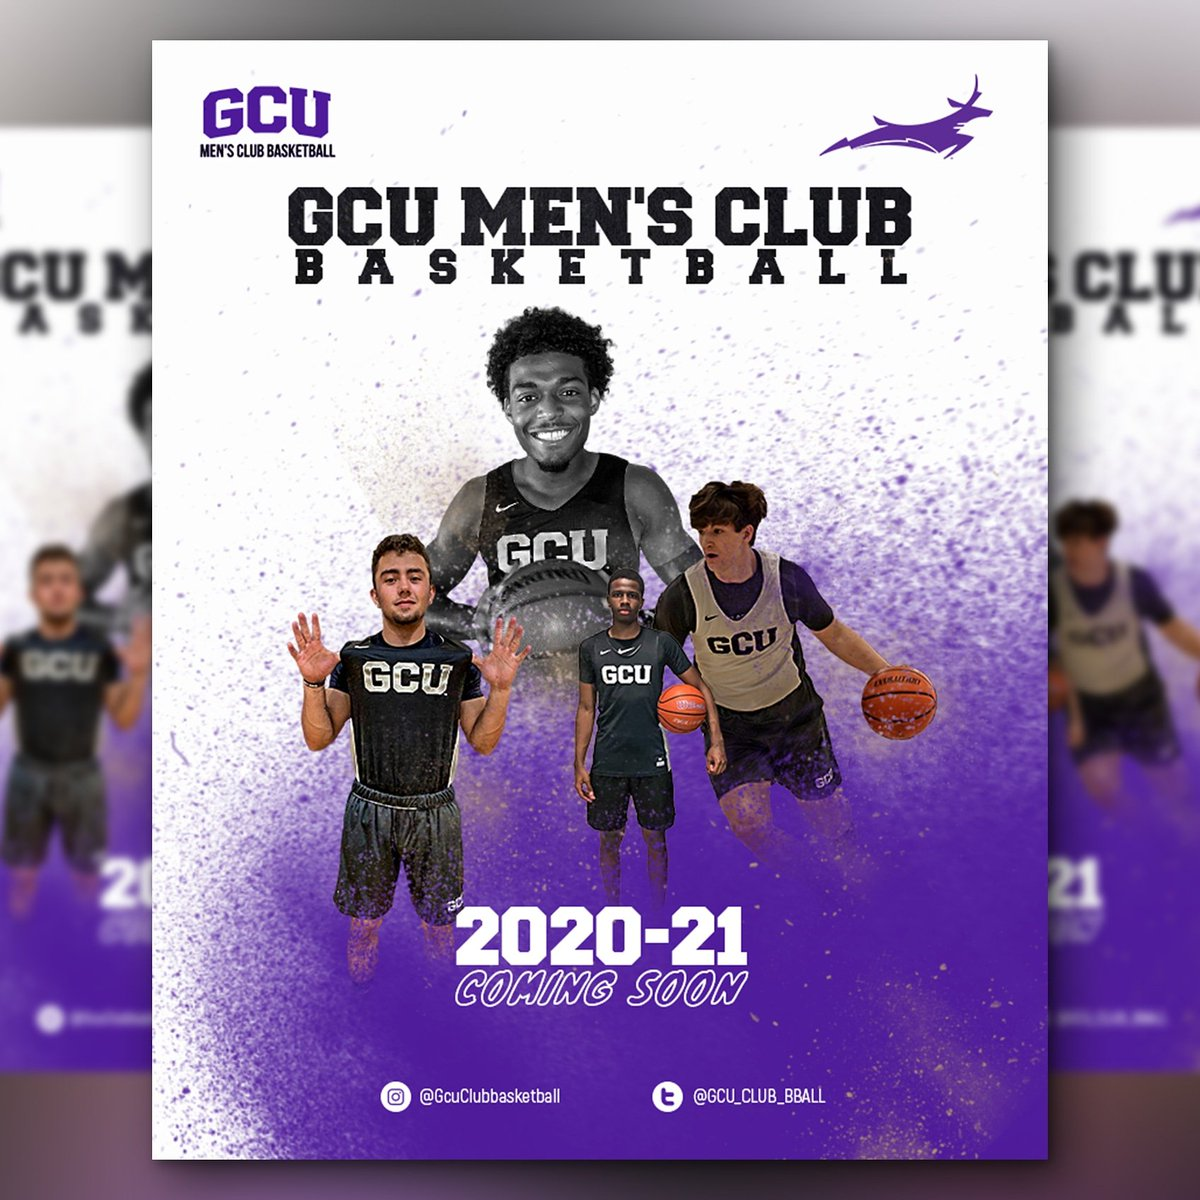 The 2020-21 season for GCU Men's Club Basketball is right around the corner.  If you have any questions about player eligibility, tryouts, or schedules please contact us for more information!  #GCUBASKETBALL #GOLOPES #grandcanyonuniversity #gcuclubsports #gcu https://t.co/zc3pclx5AZ